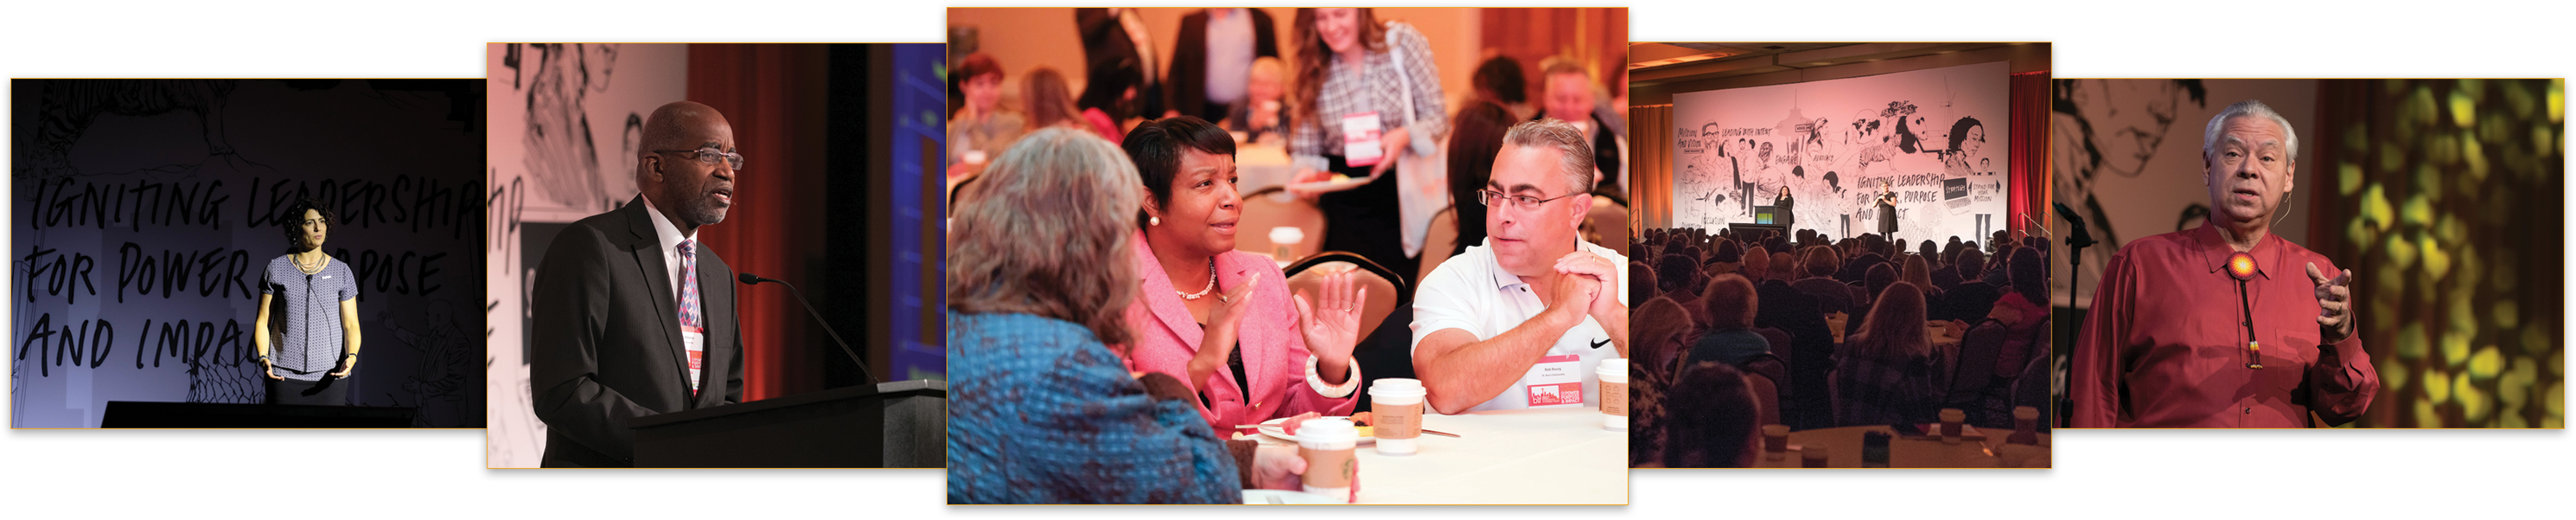 photos of conference attendees at the BoardSource Leadership Forum